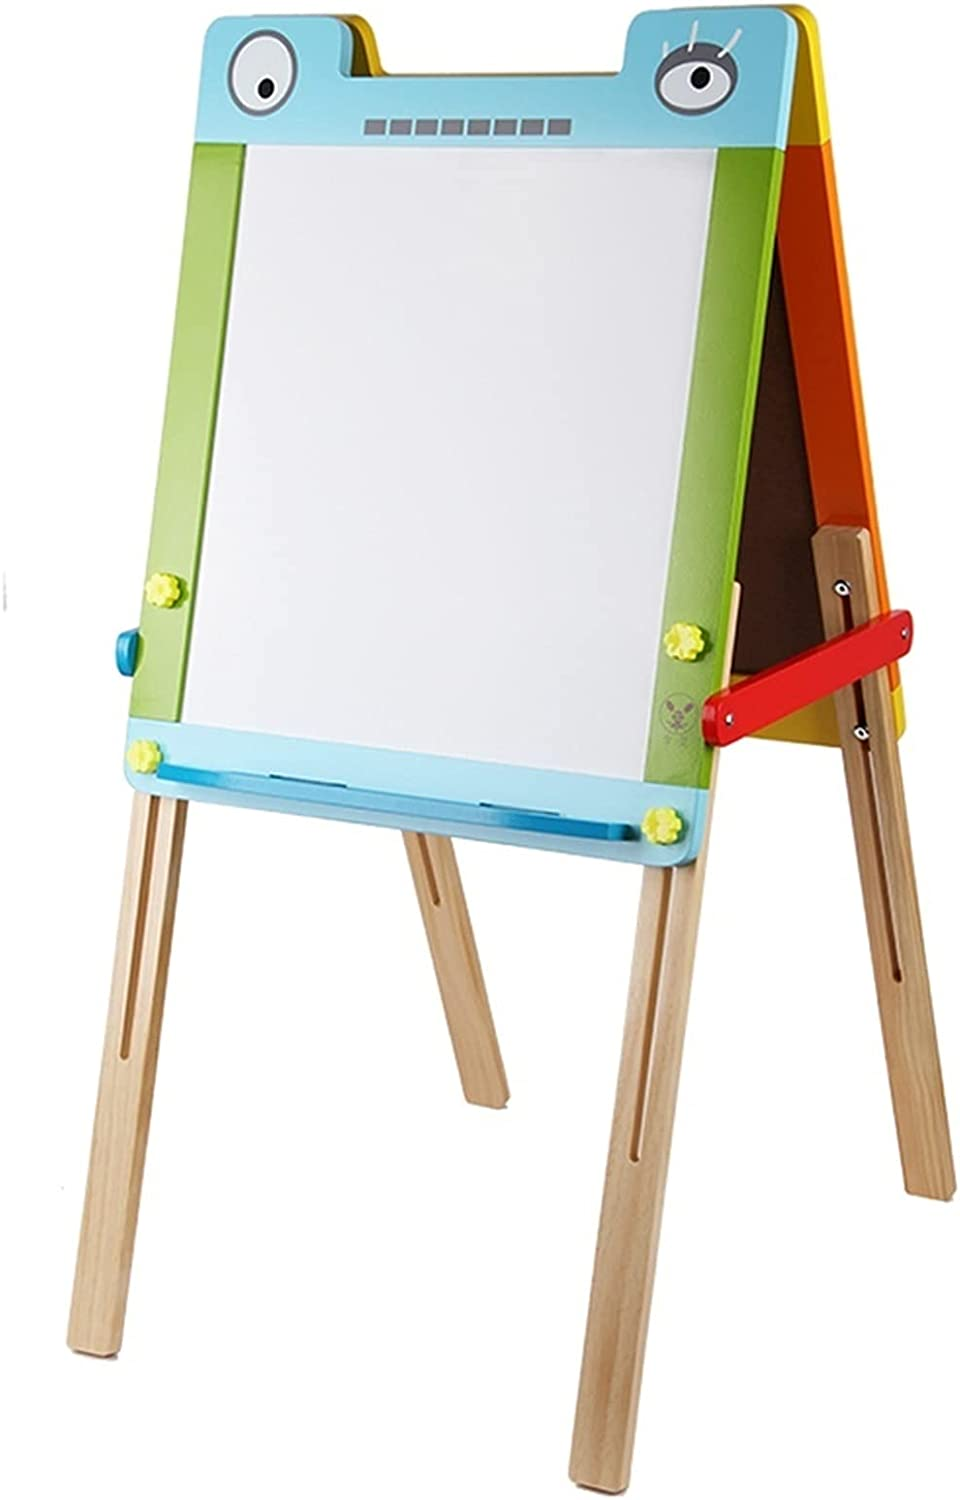 LICHUAN Wooden Max 55% OFF Art Kids Easel Sided Double Height Cha Adjustable Now free shipping